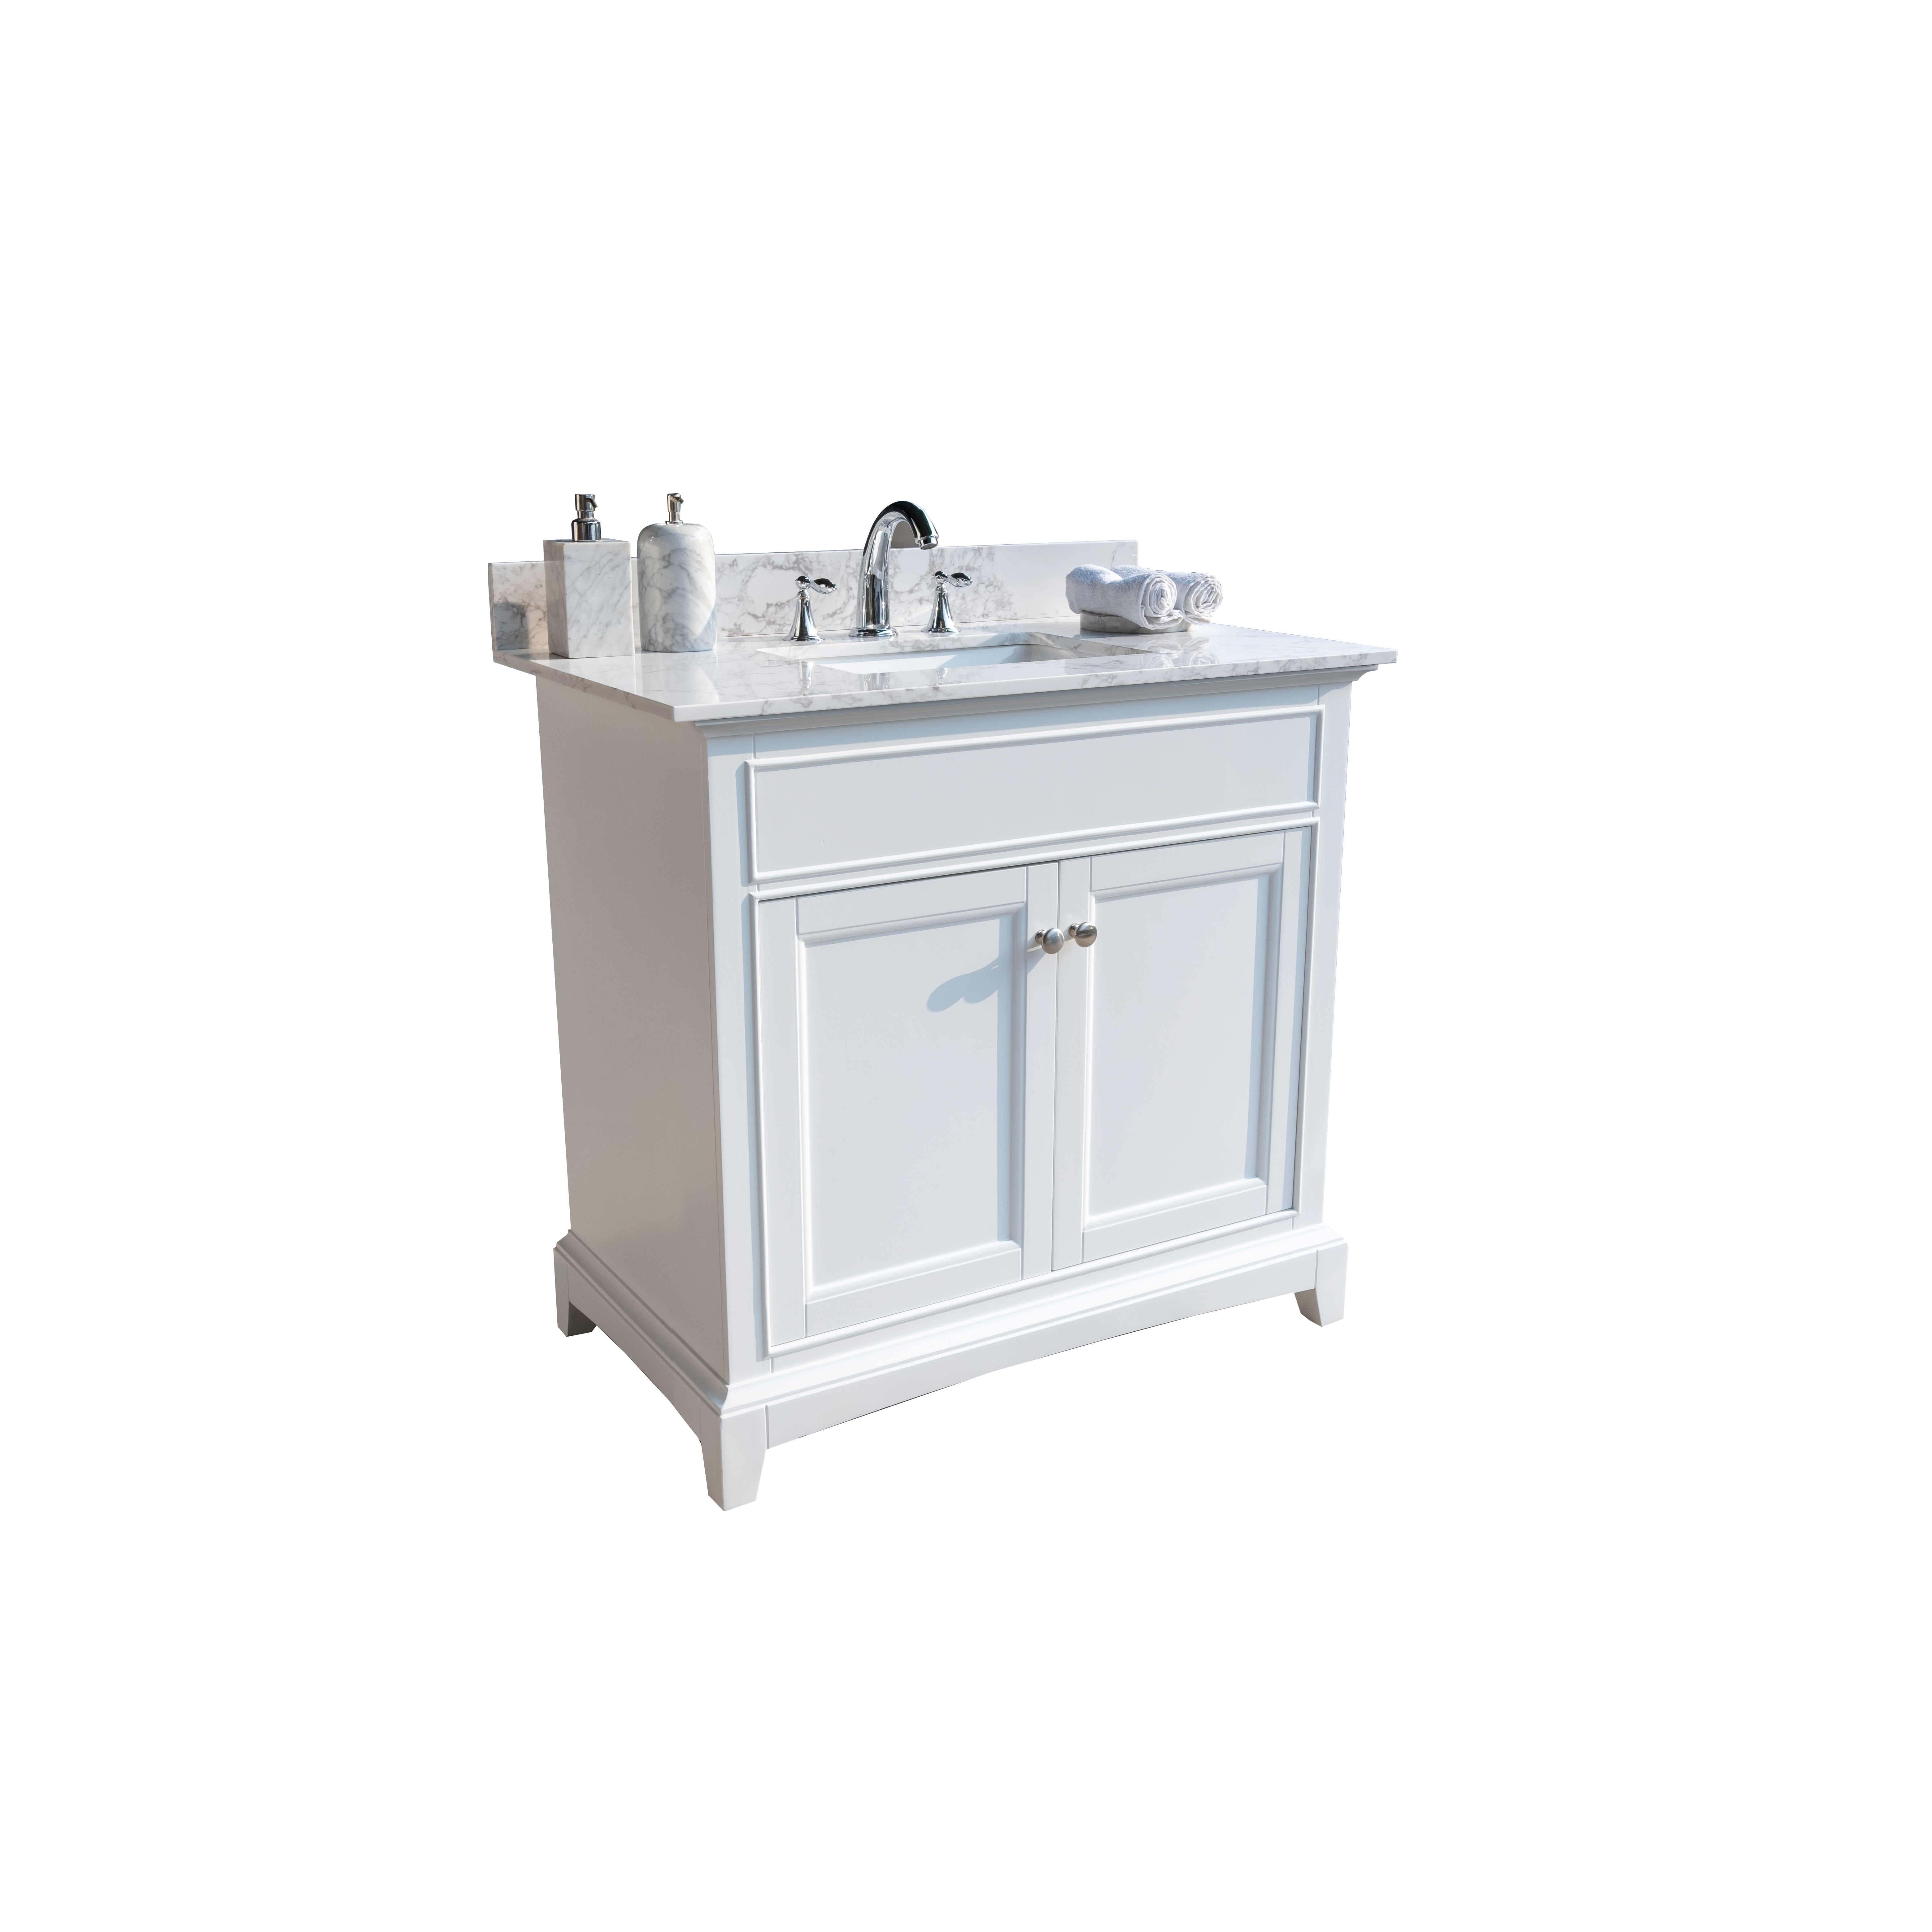 Montary 37inch Bathroom Vanity Top Stone Carrara White New Style Tops With Rectangle Undermount Ceramic Sink And Back Splash For Bathrom Cabinet Walmart Com Walmart Com